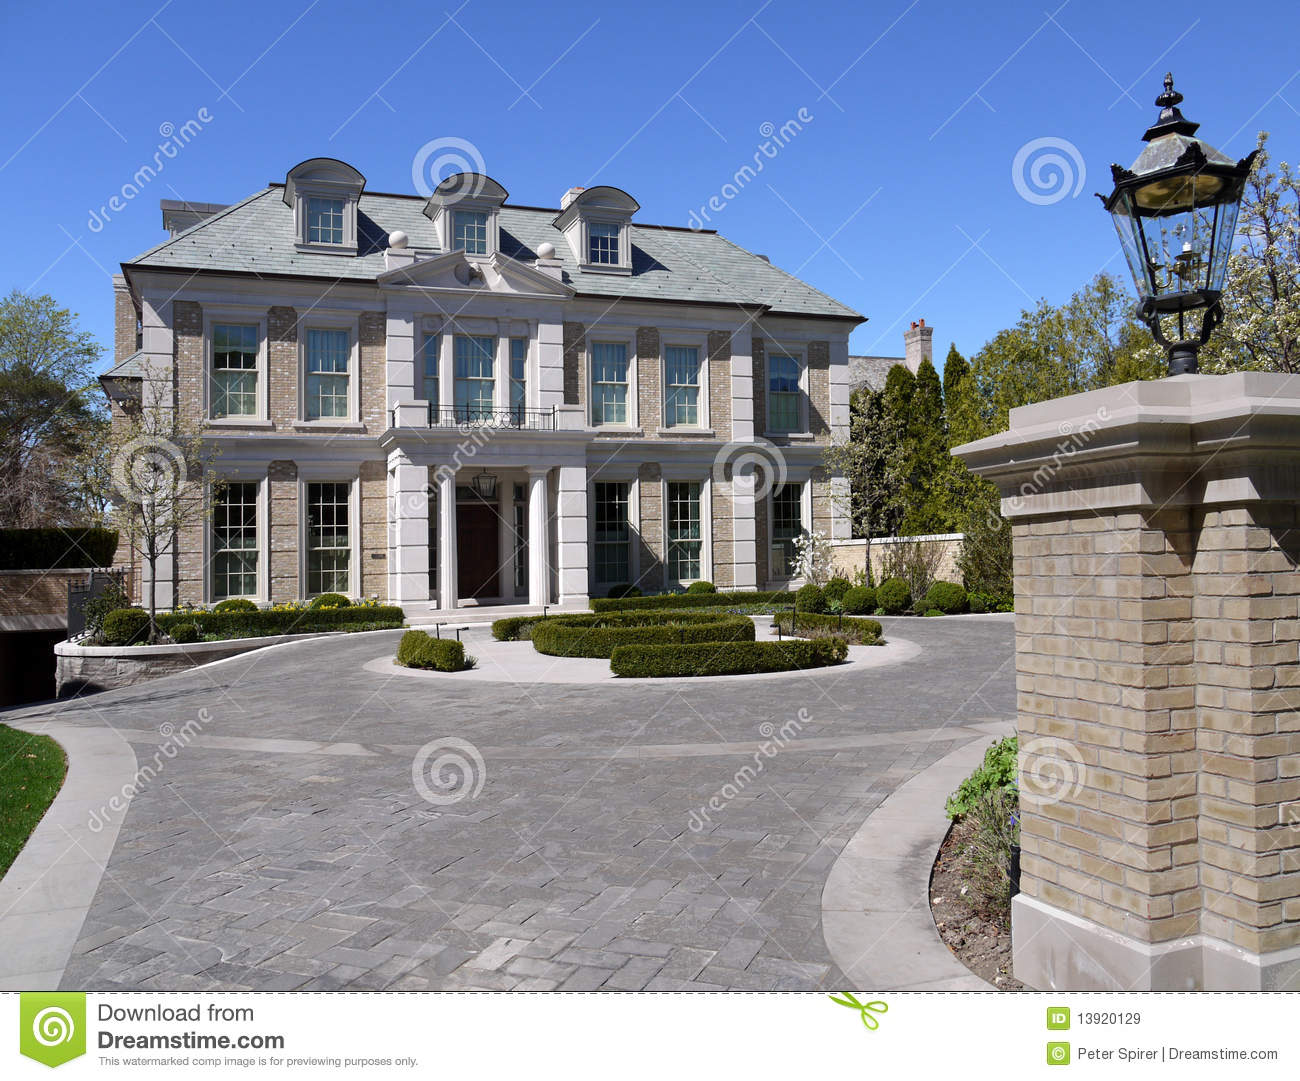 House With Circular Driveway Royalty Free Stock Images - Image ...